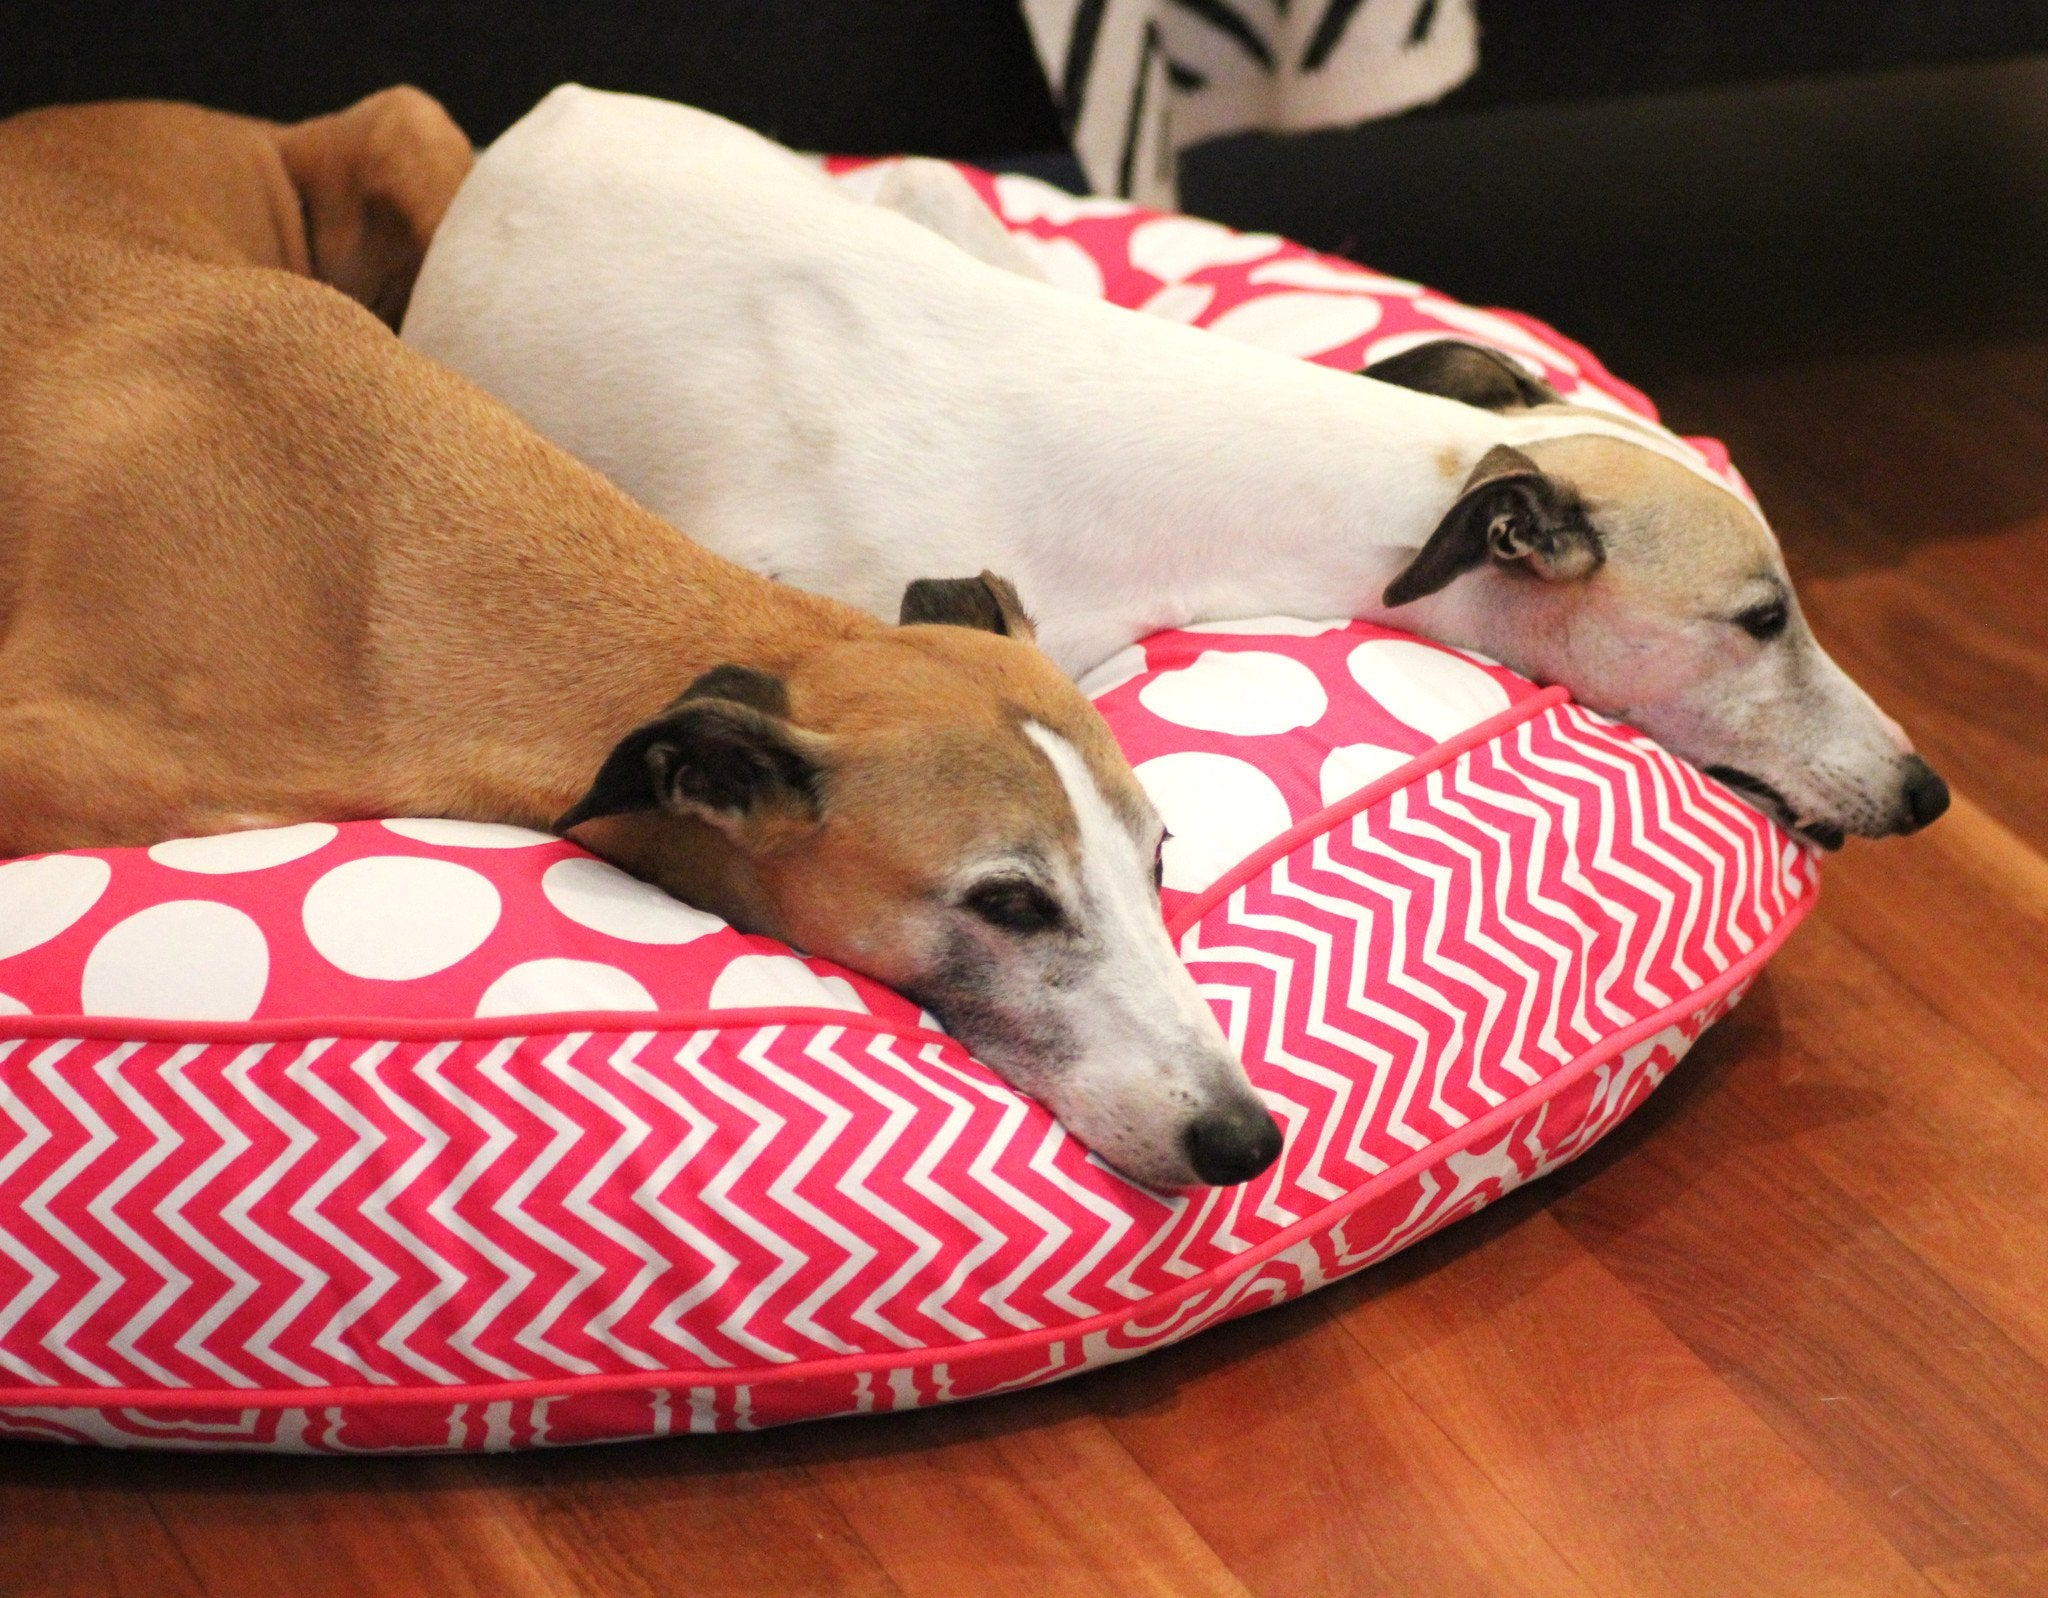 Dharf luxury dog bed with removable cover in pink and white geometric pattern